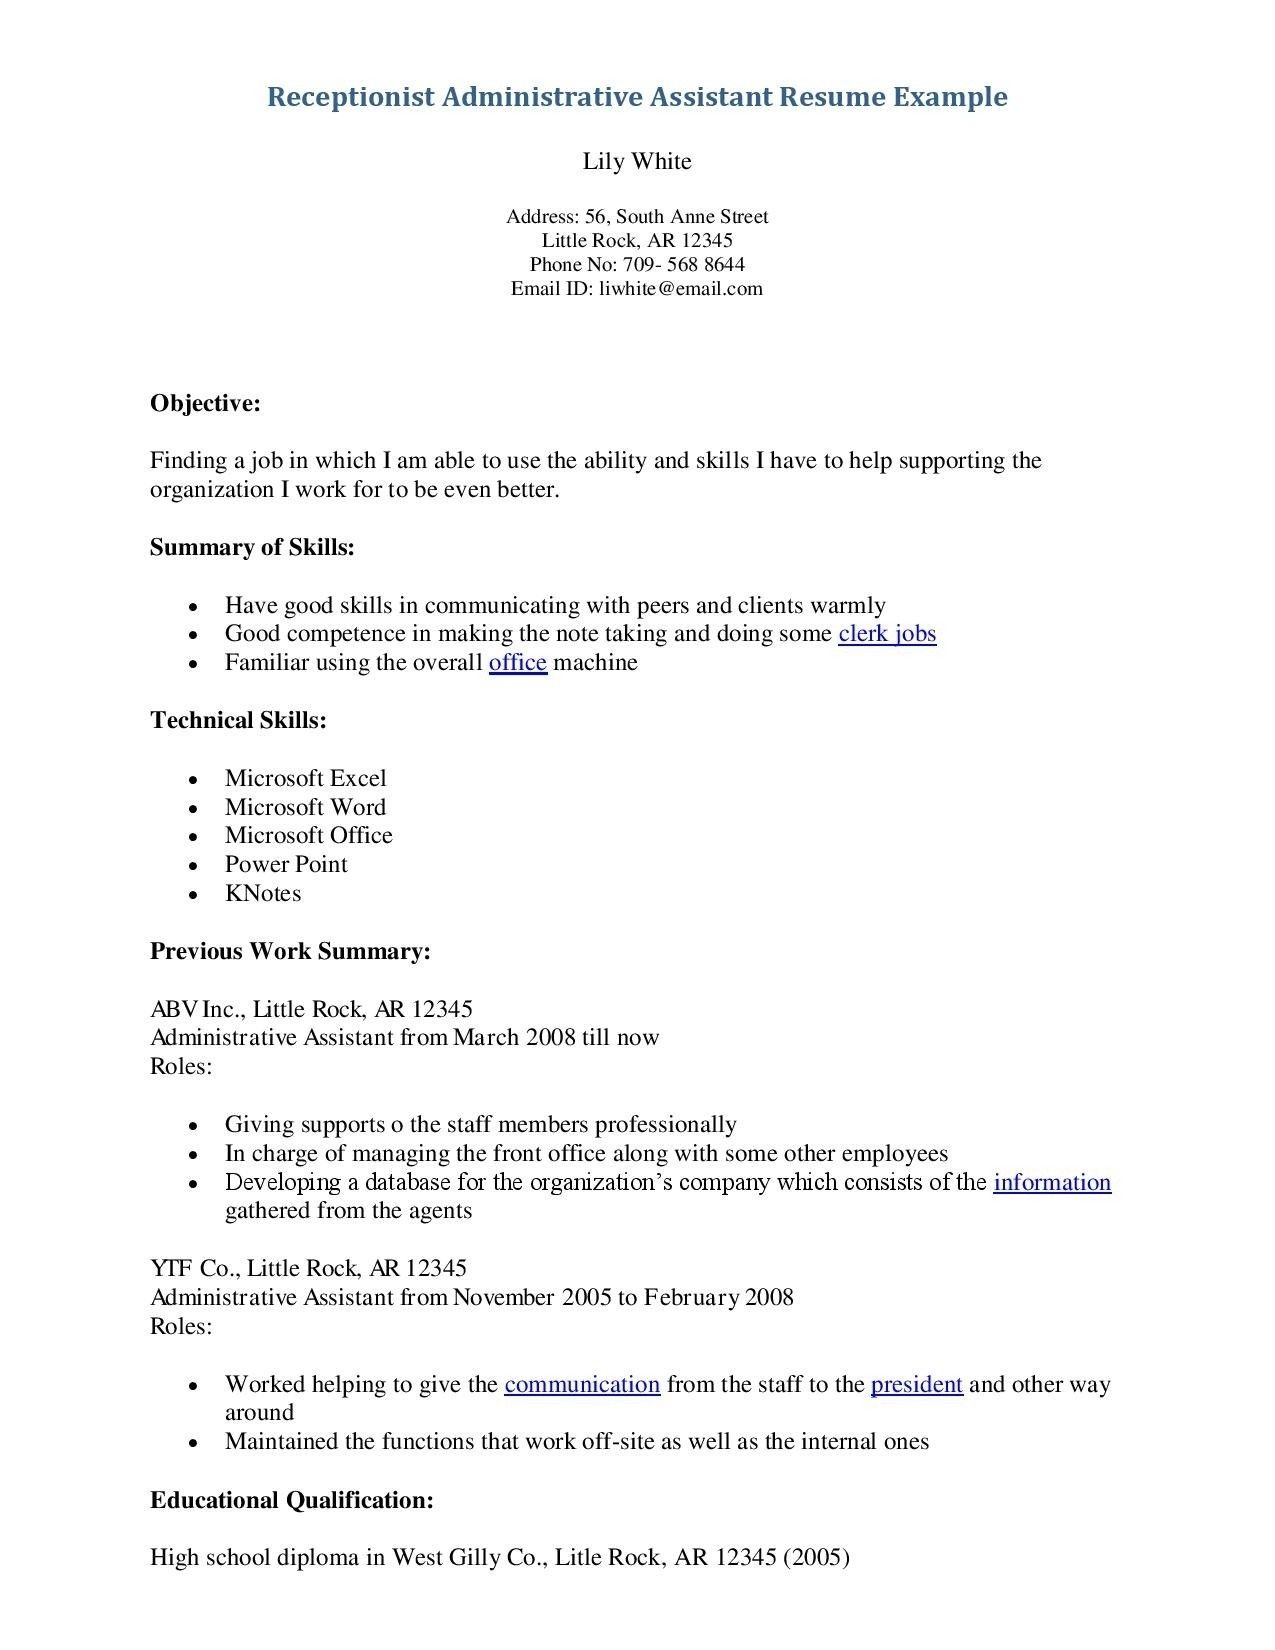 75 Inspiring Gallery Of Resume Examples For Receptionists Check More At Https Www Our Administrative Assistant Resume Resume Skills Resume Objective Examples